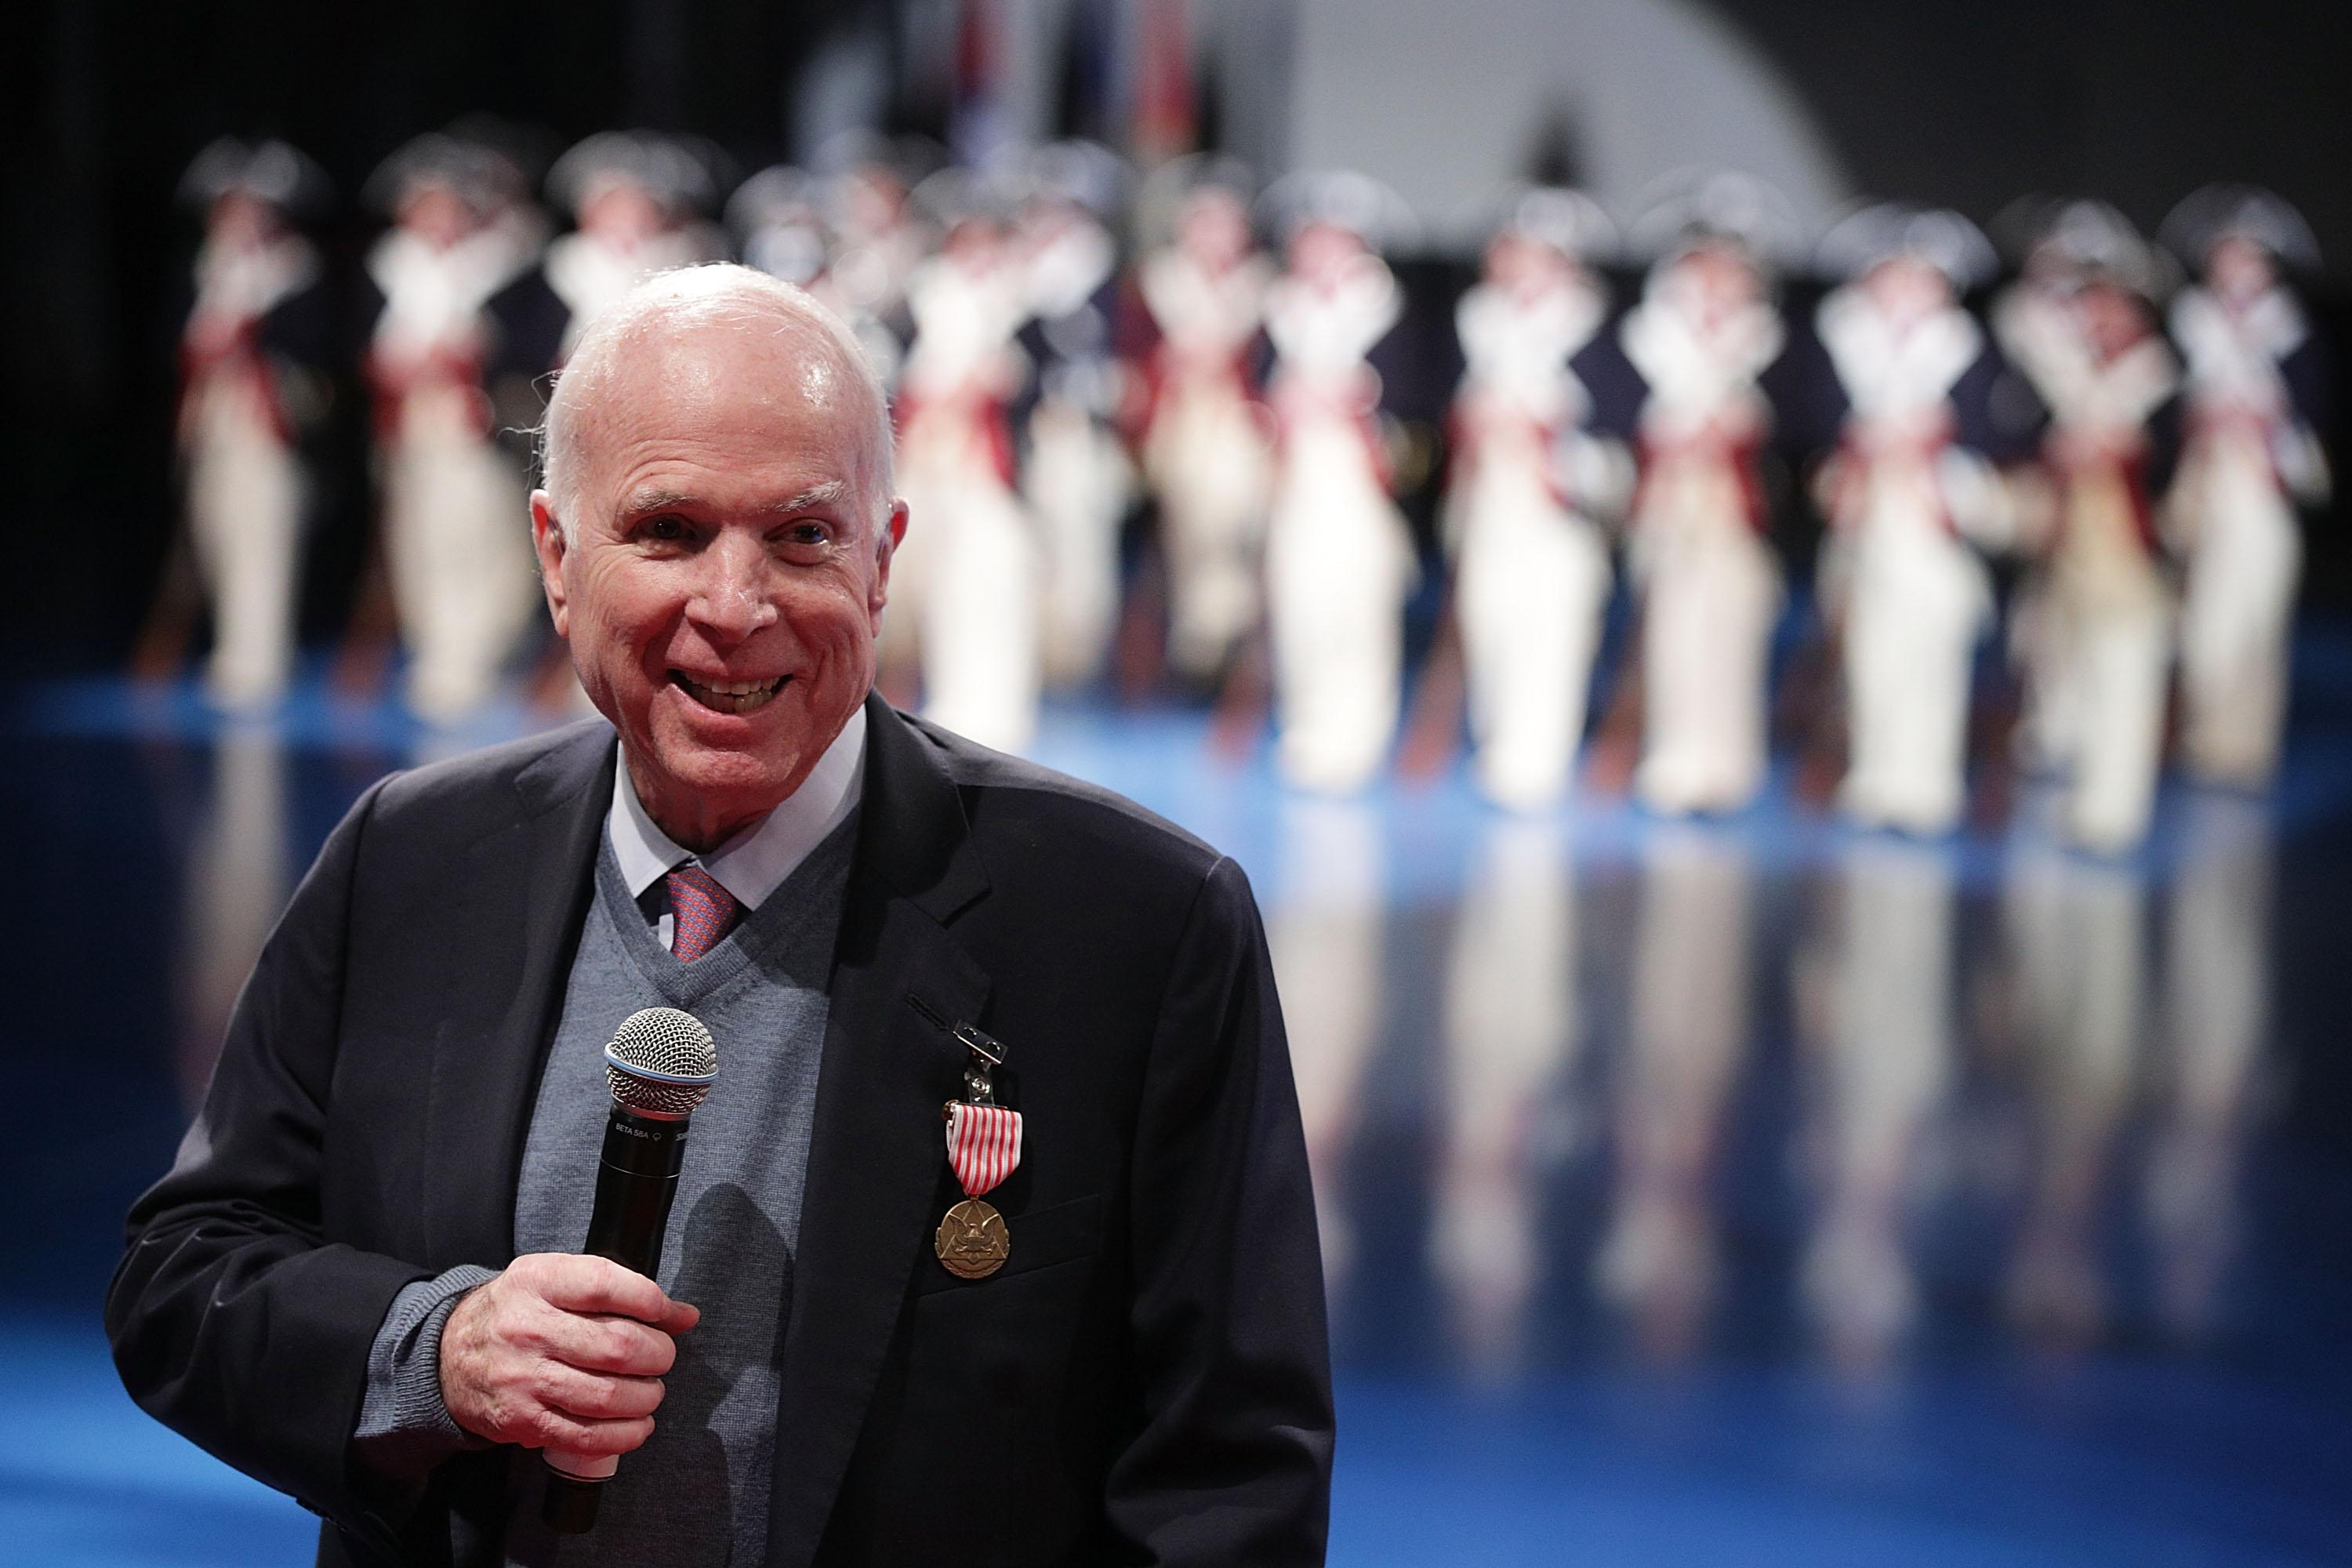 Sen. John McCain (R-AZ) speaks after he was presented with the Outstanding Civilian Service Medal during a special Twilight Tattoo performance November 14, 2017 at Fort Myer in Arlington, Virginia. Sen. McCain was honored for over 63 years of dedicated service to the nation and the U.S. Navy.